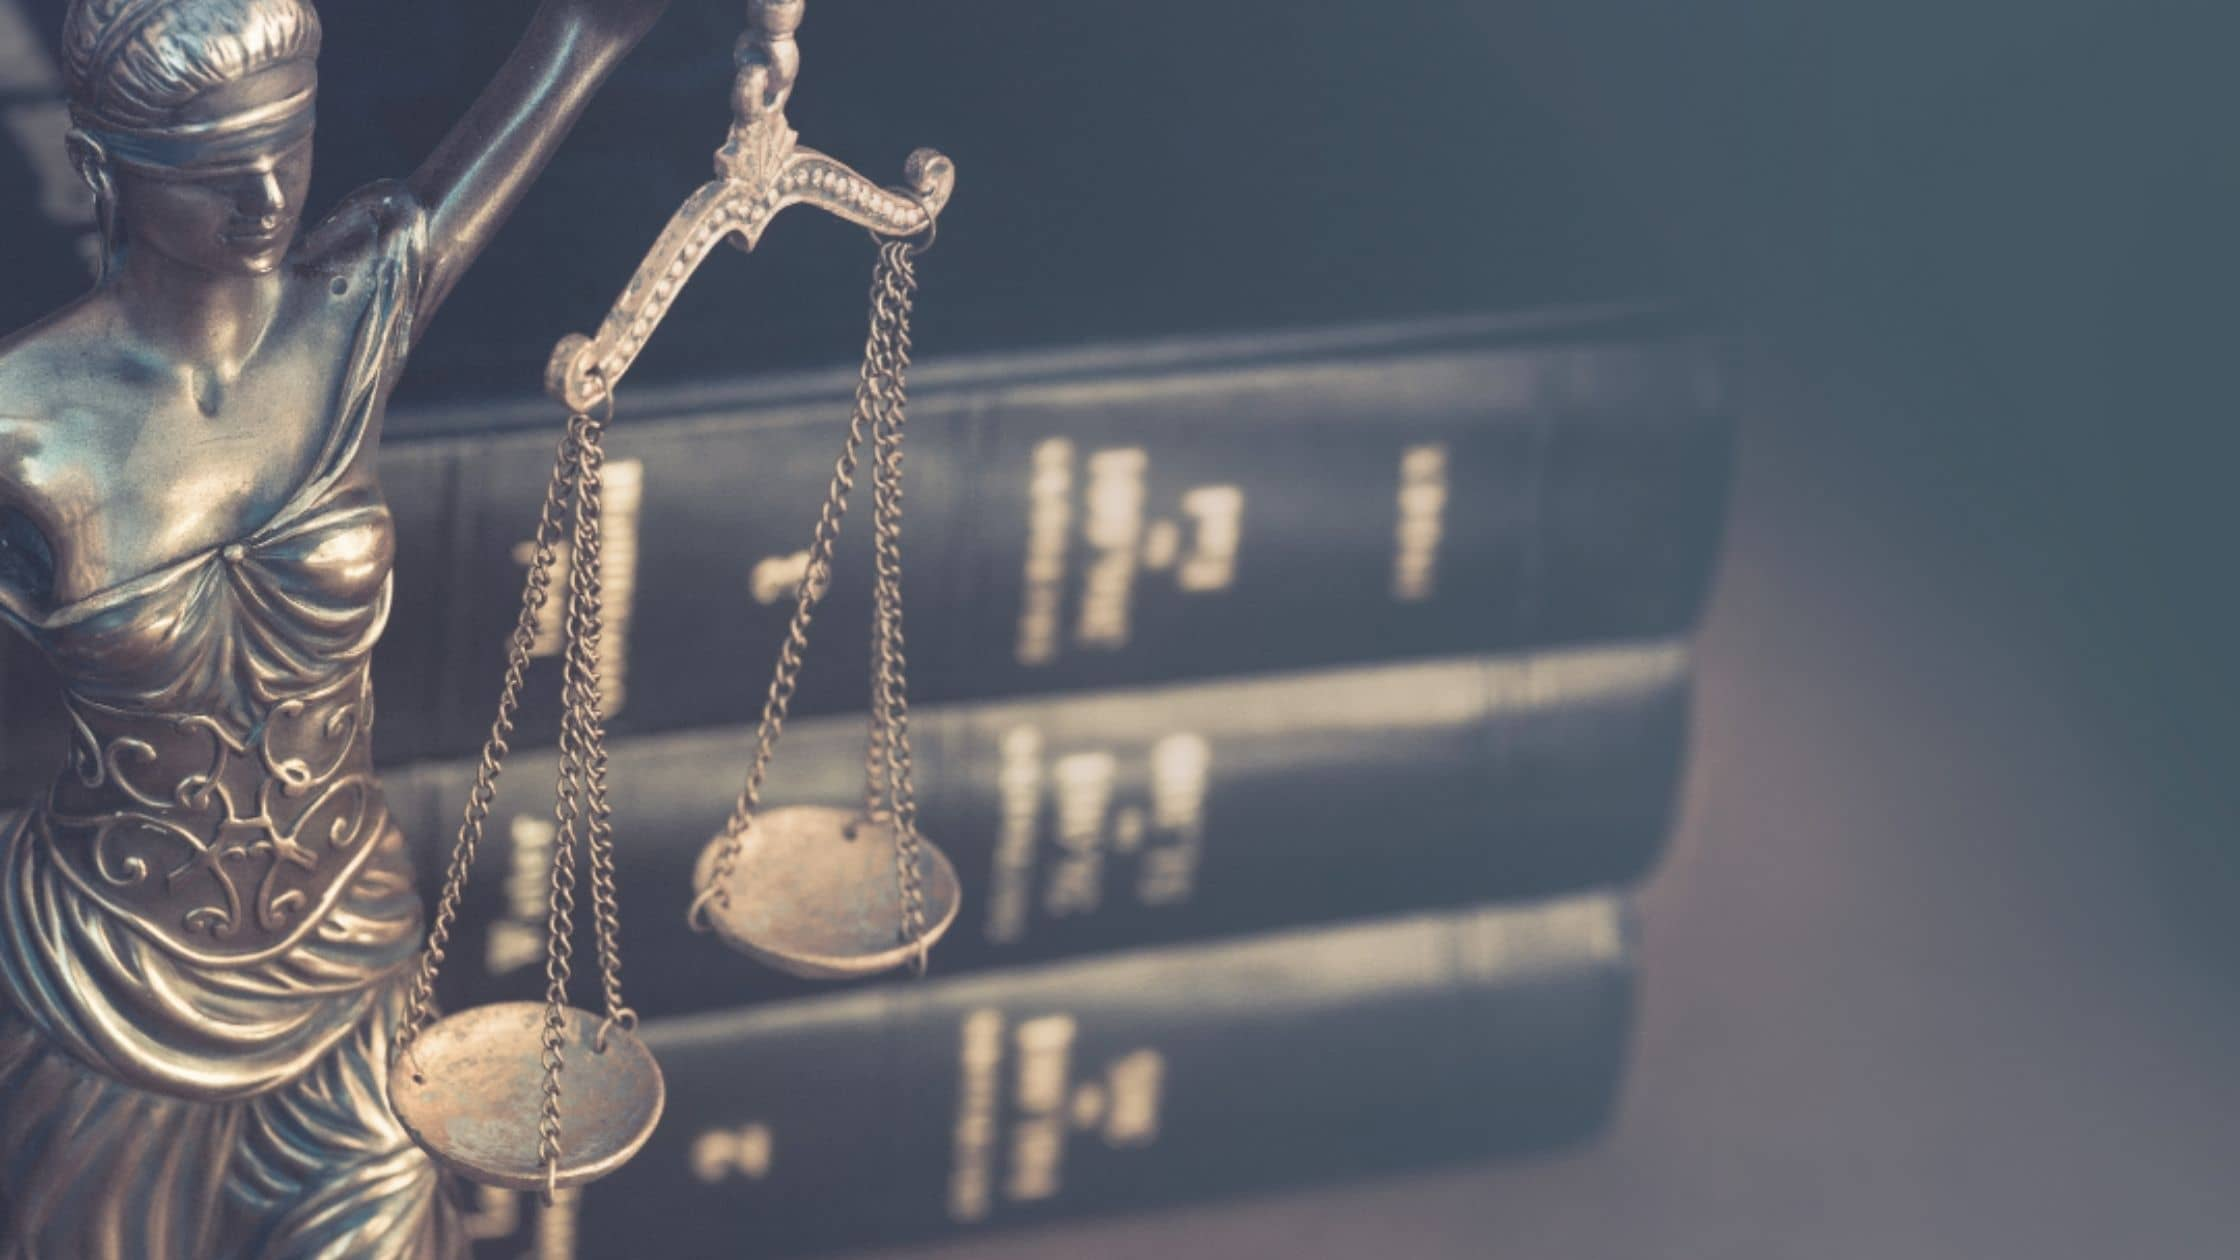 Recognition and Enforcement of foreign judgment in Malta, litigation